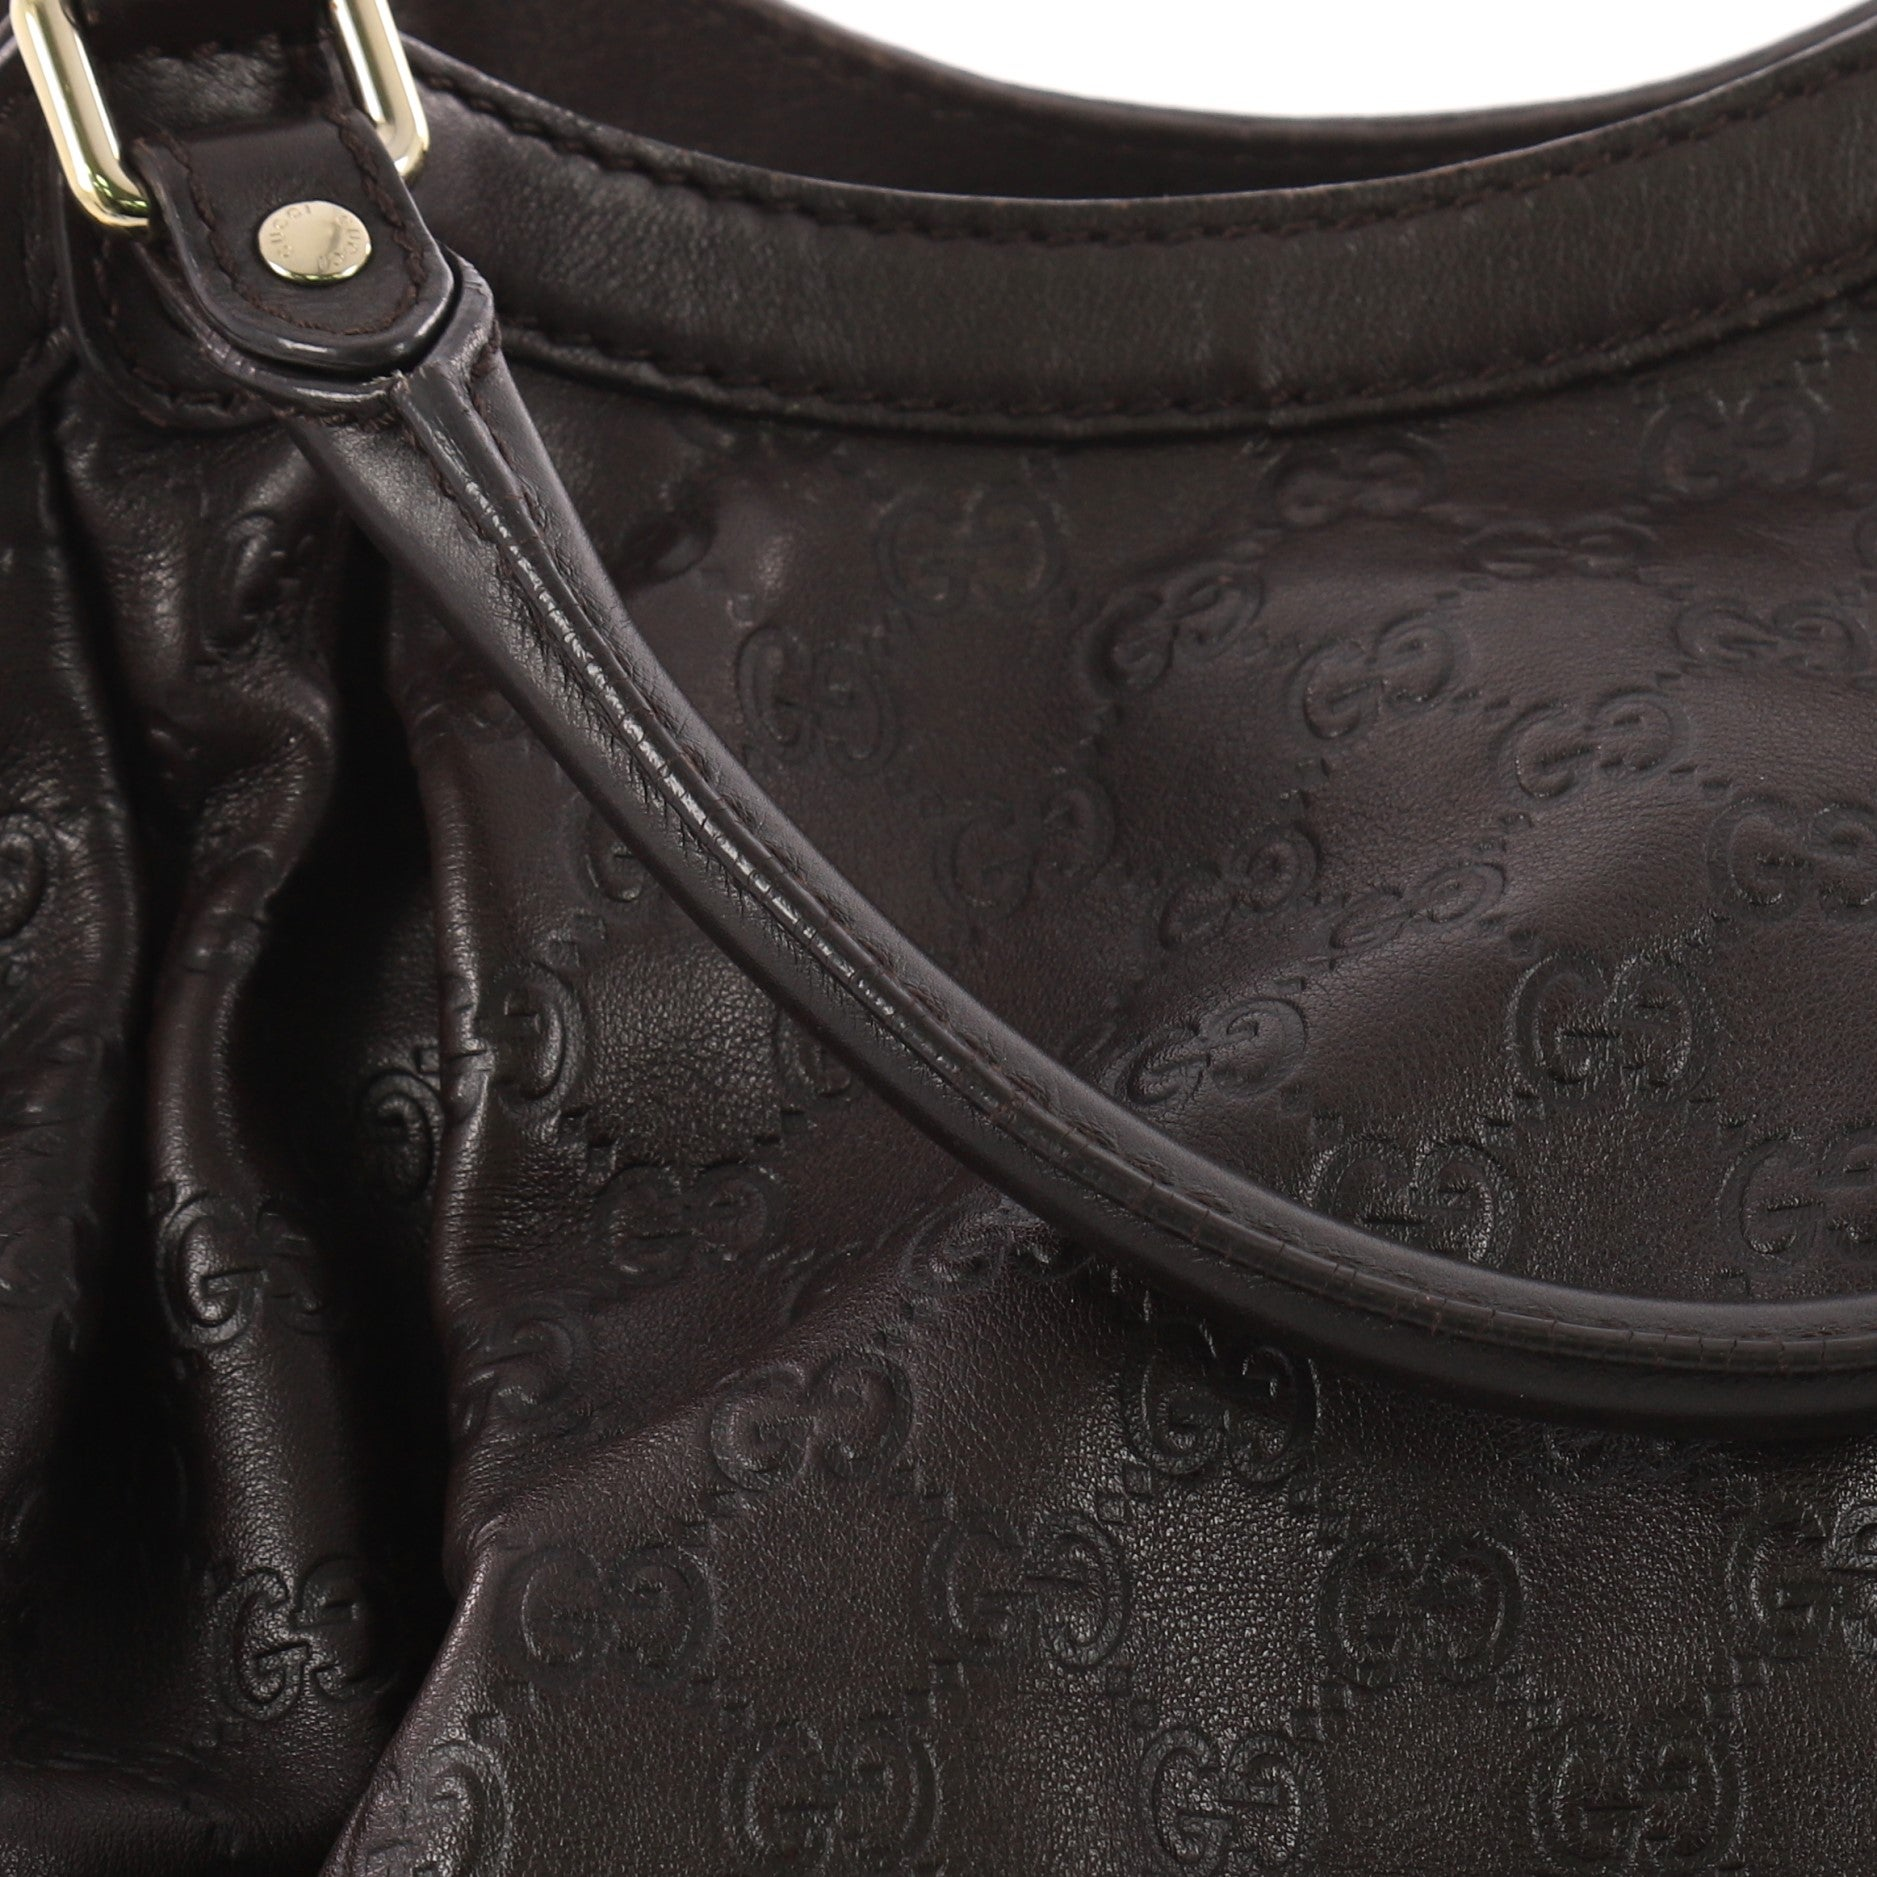 a29d1785278a Gucci Sukey Tote Guccissima Leather Large at 1stdibs